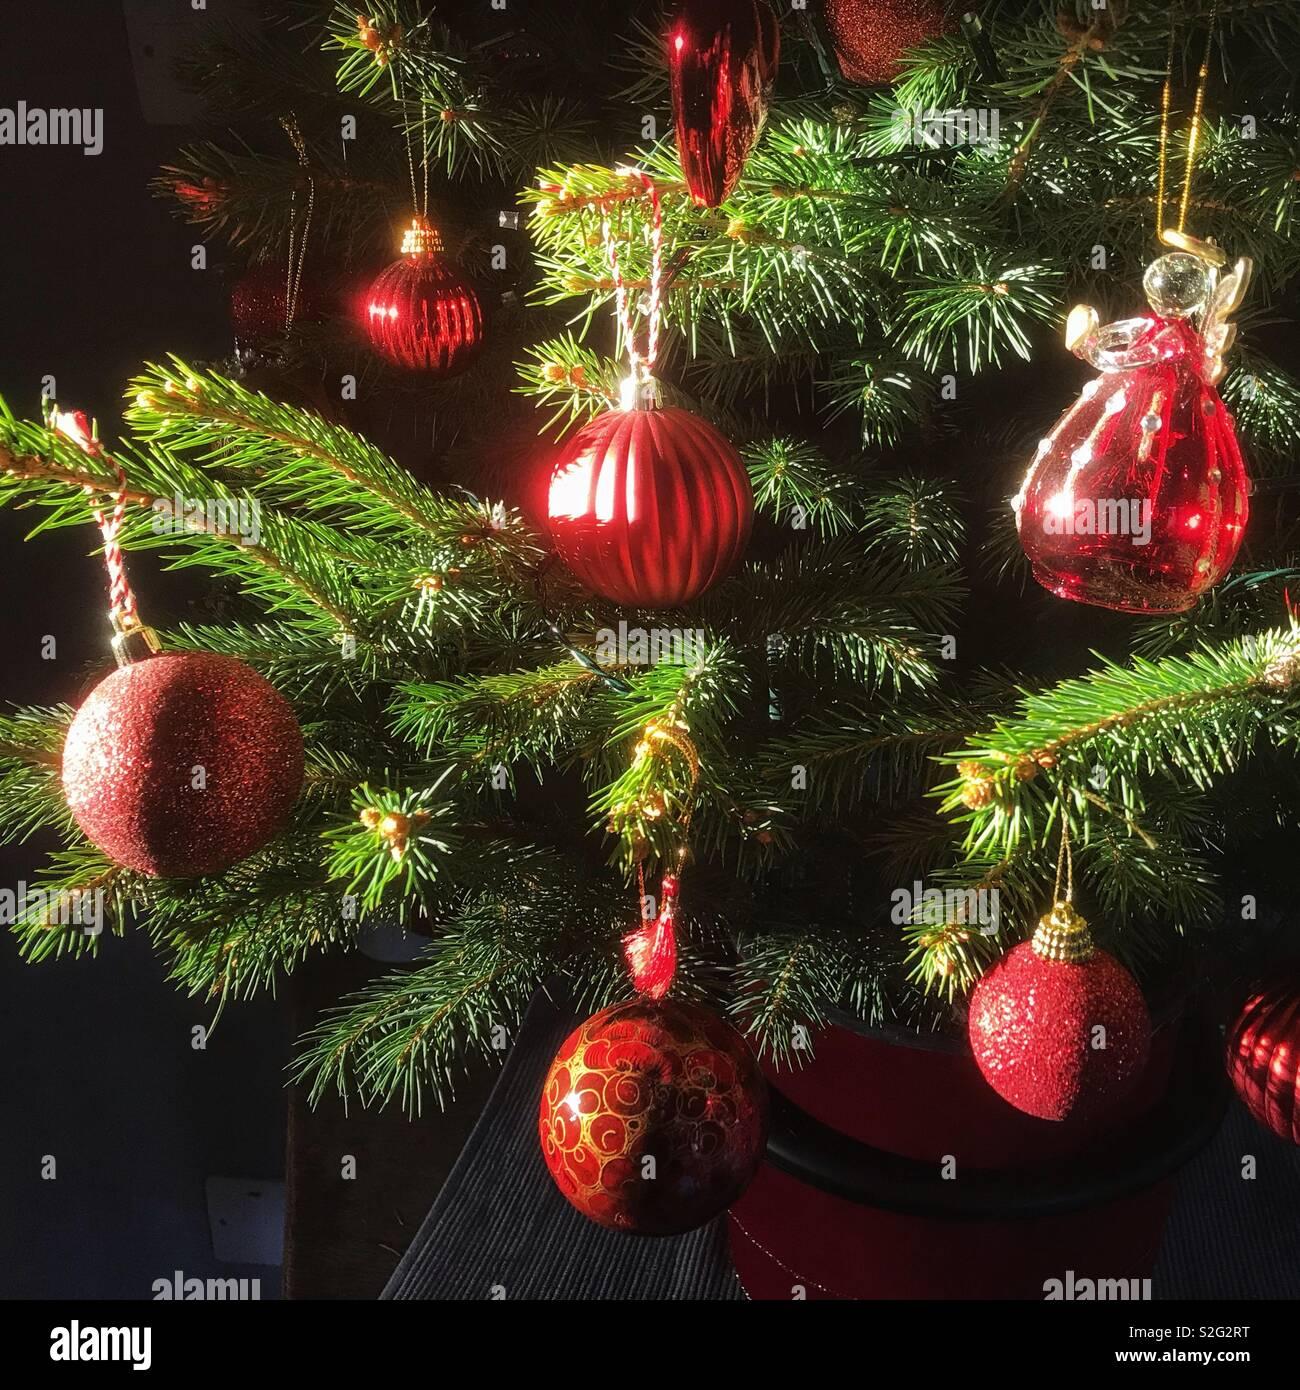 Christmas Baubles on a tree - Stock Image